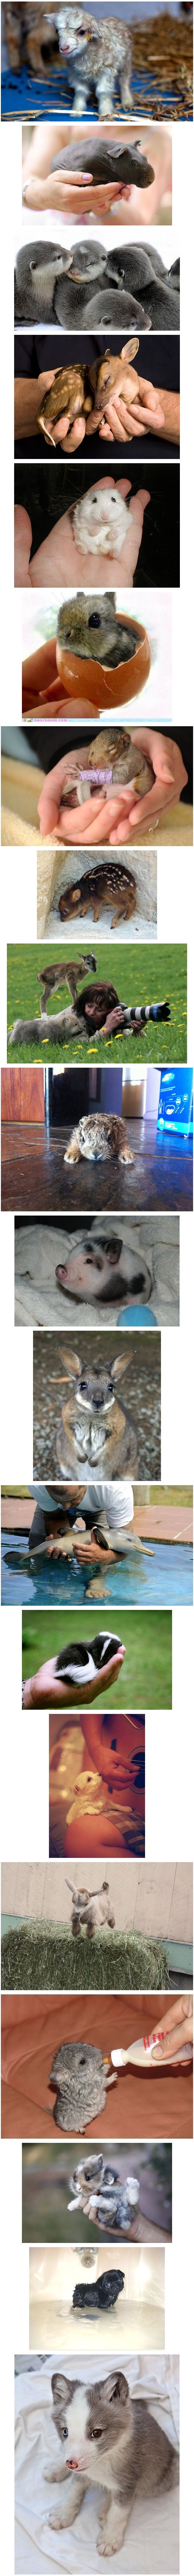 little ones. Who doesn't love animals after looking at this!